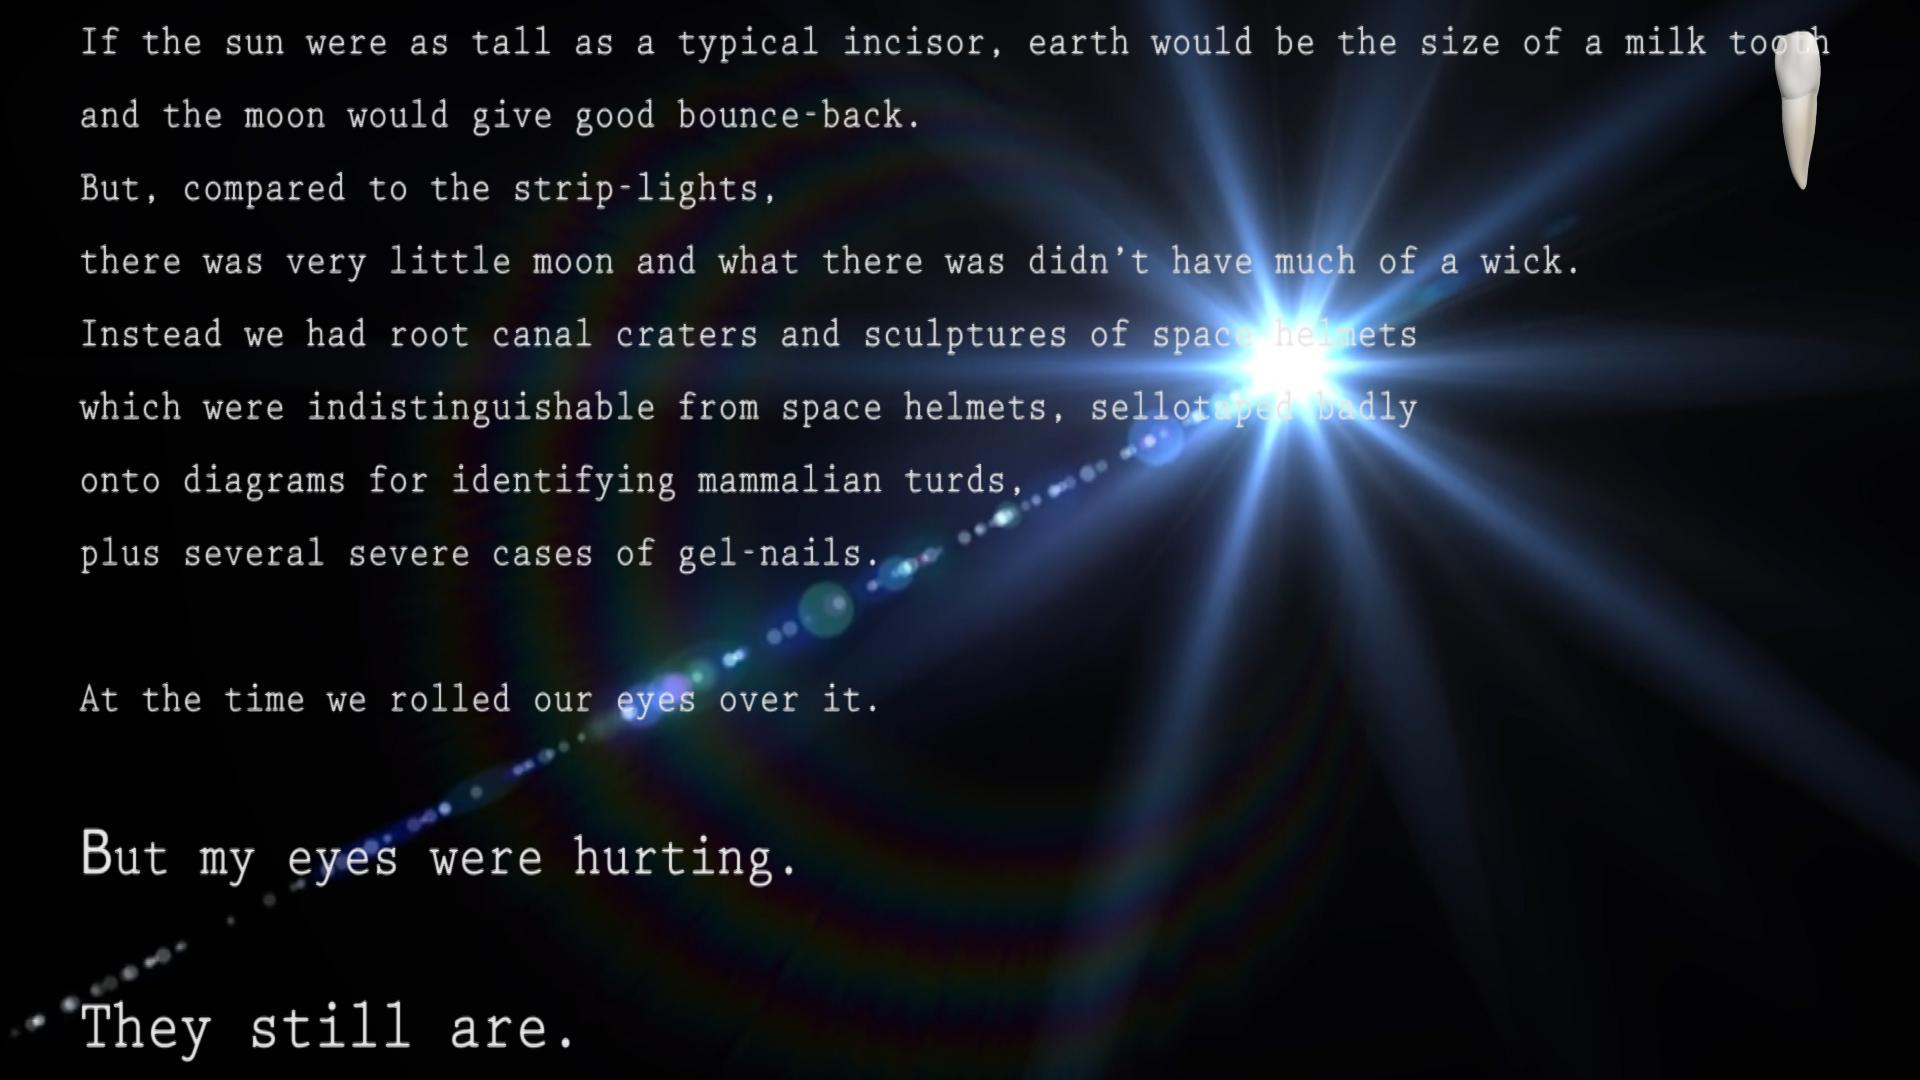 Eleven lines of white computer text appear over an image of a blue starburst or lens flare against a black background.